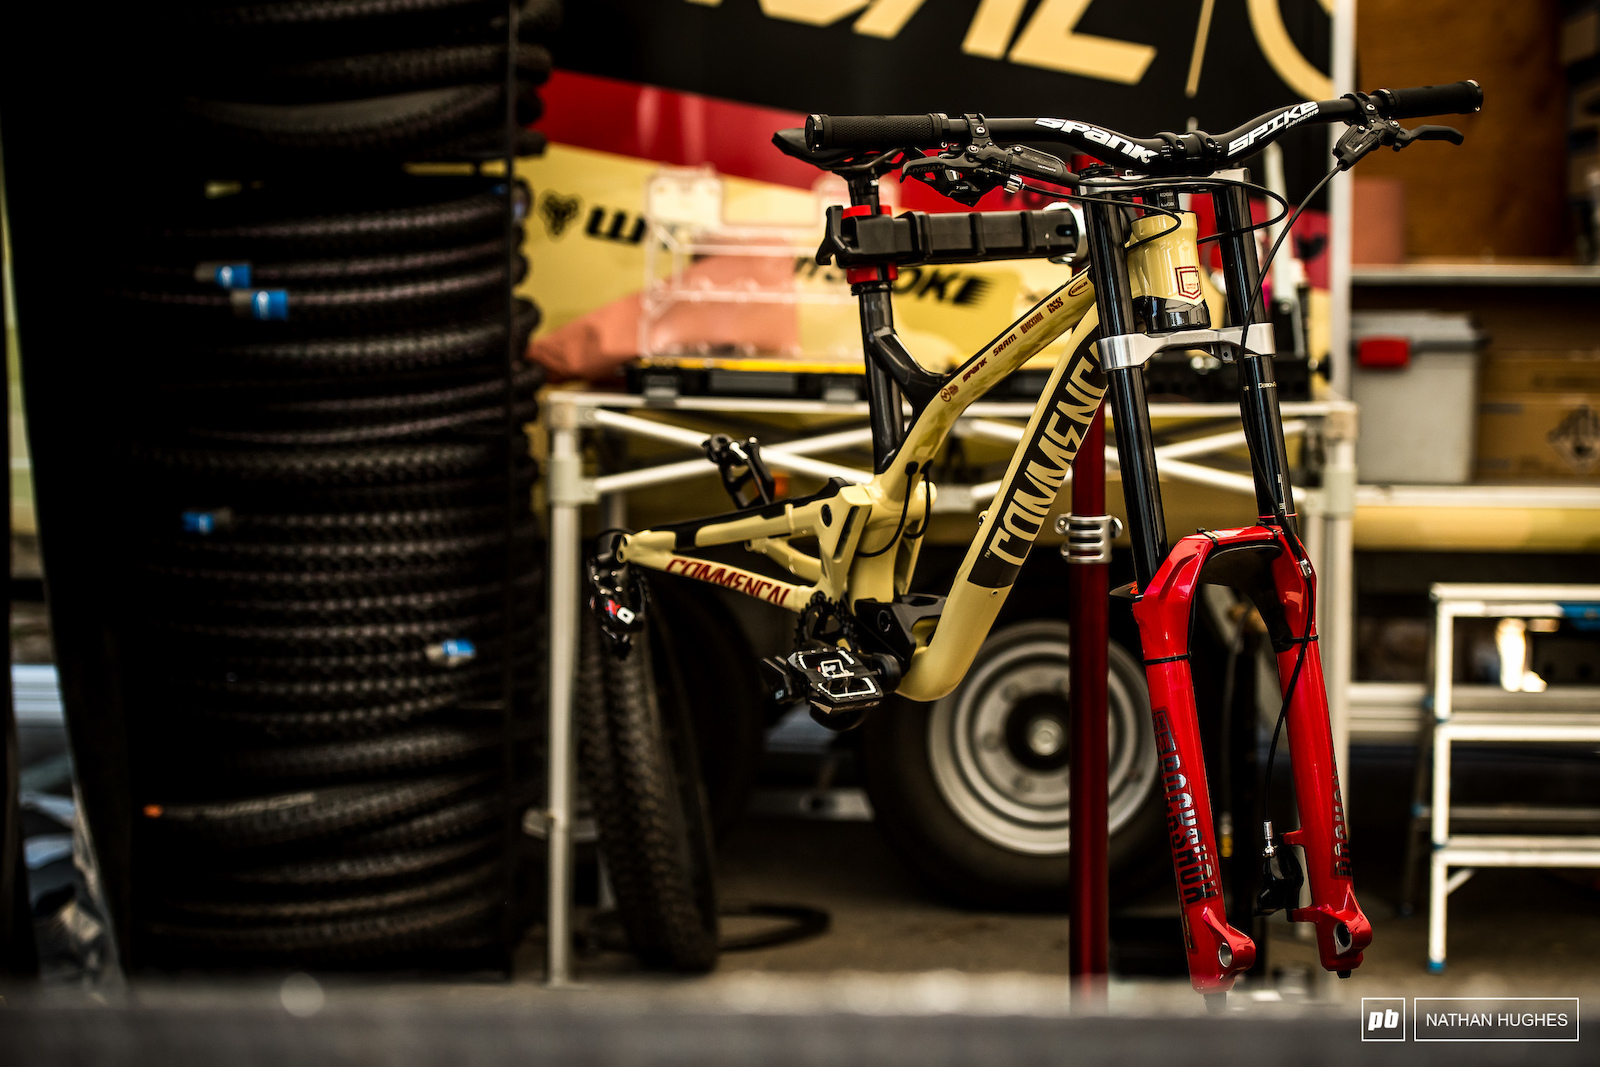 All kind of badass bikes are lurking in the pits ready to be unleashed on track.